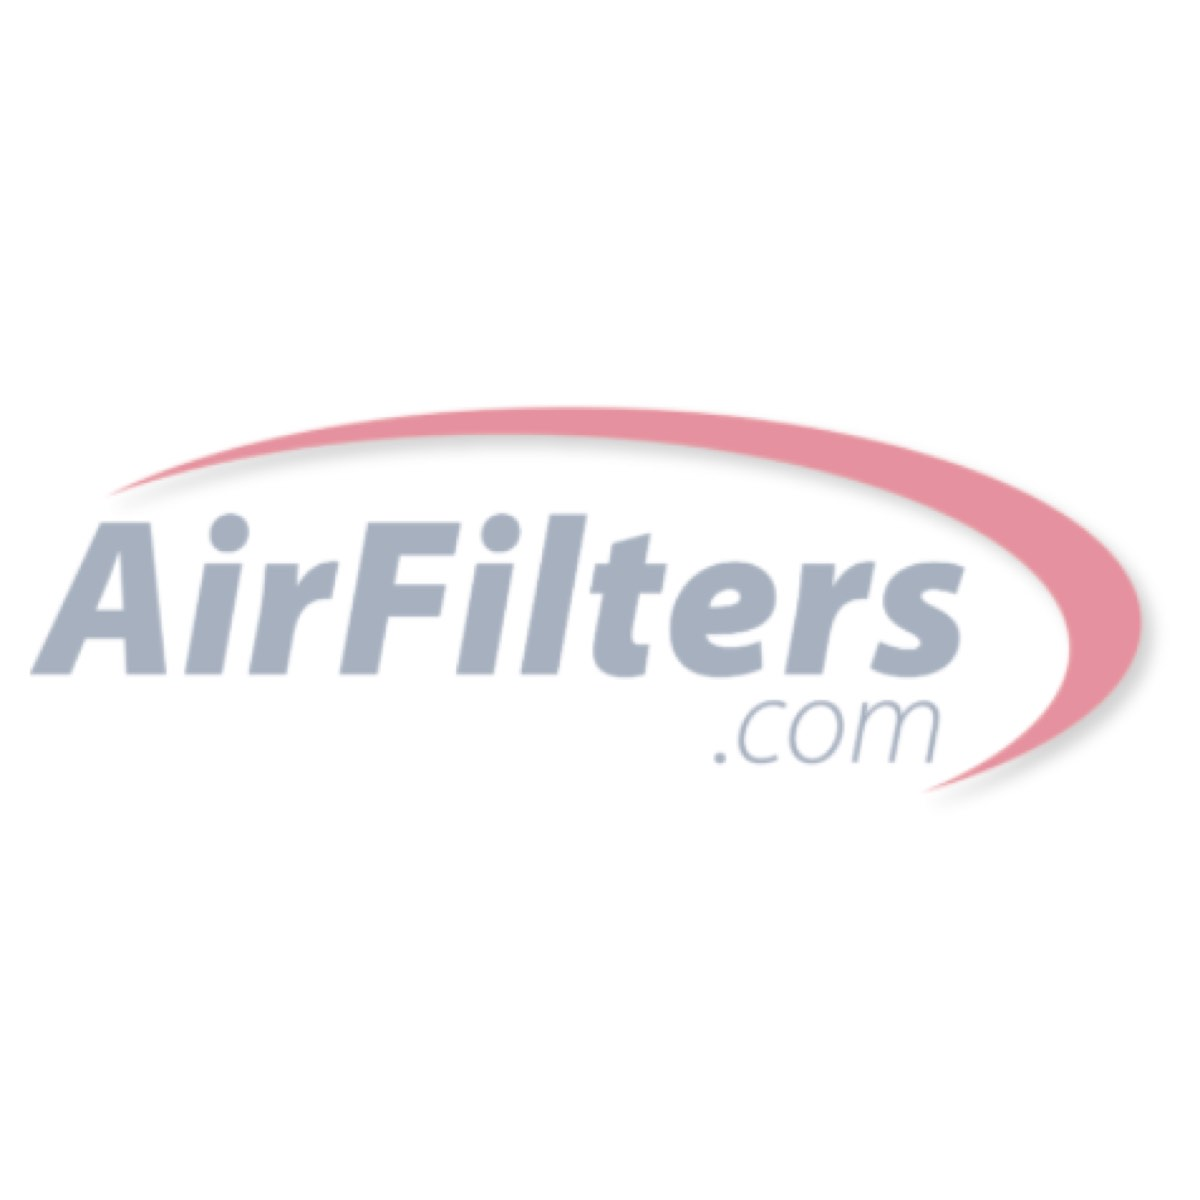 White Rodgers™ 20x25x5 (19.88x24.5x4.25) Air Filters by Accumulair®